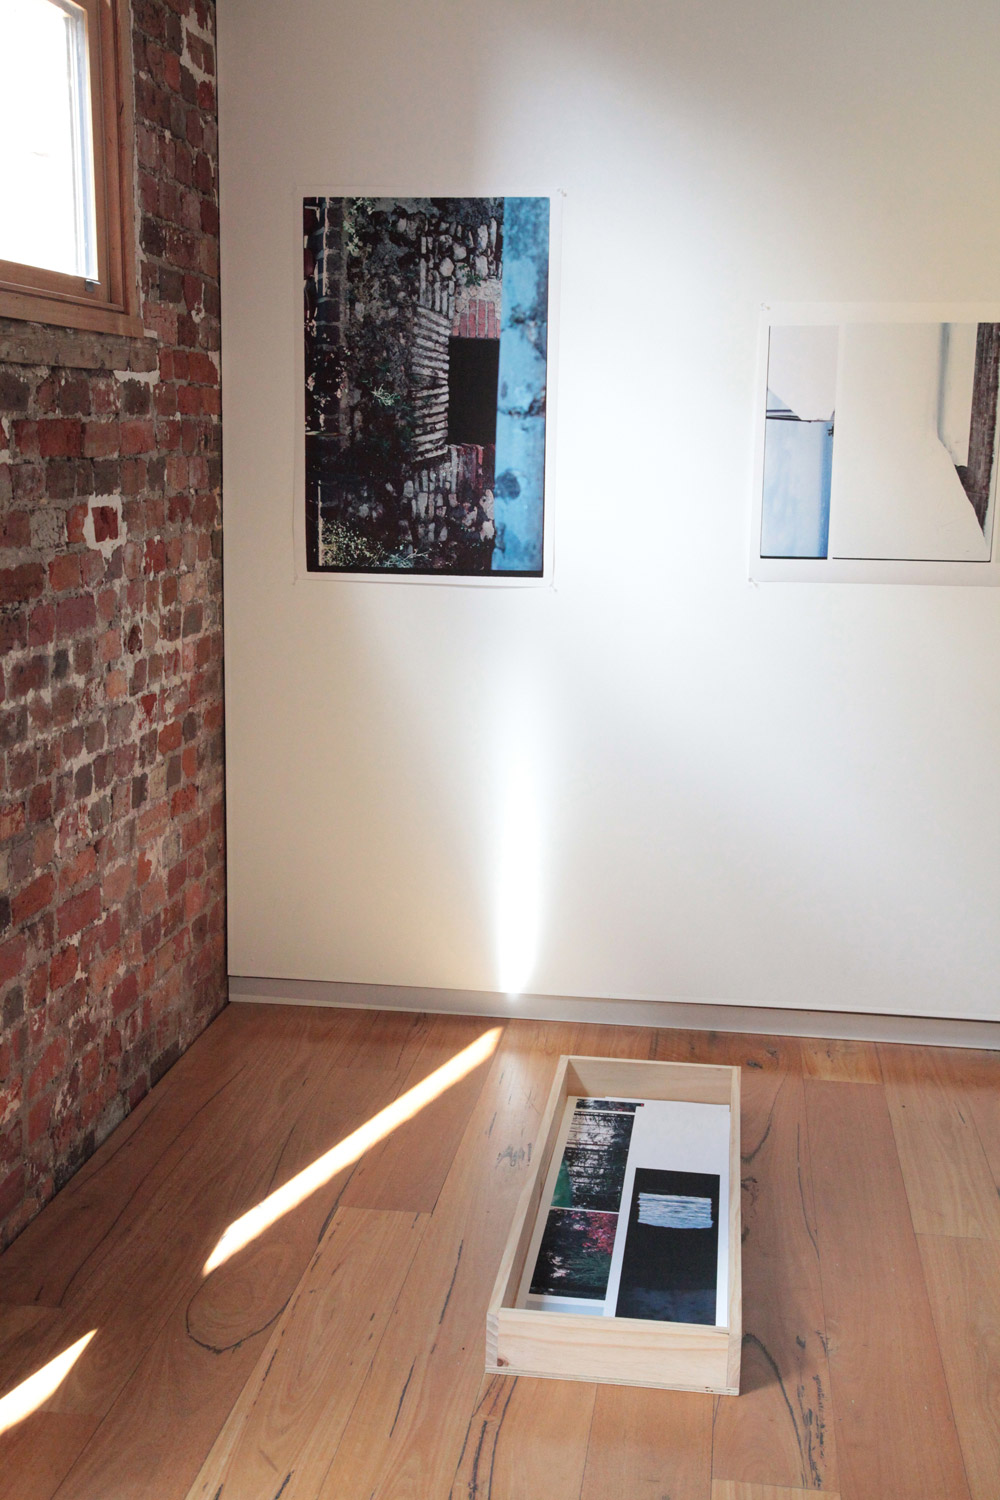 Fragments of Snow and Times Before. Installation View. Beam Contemporary. 2013